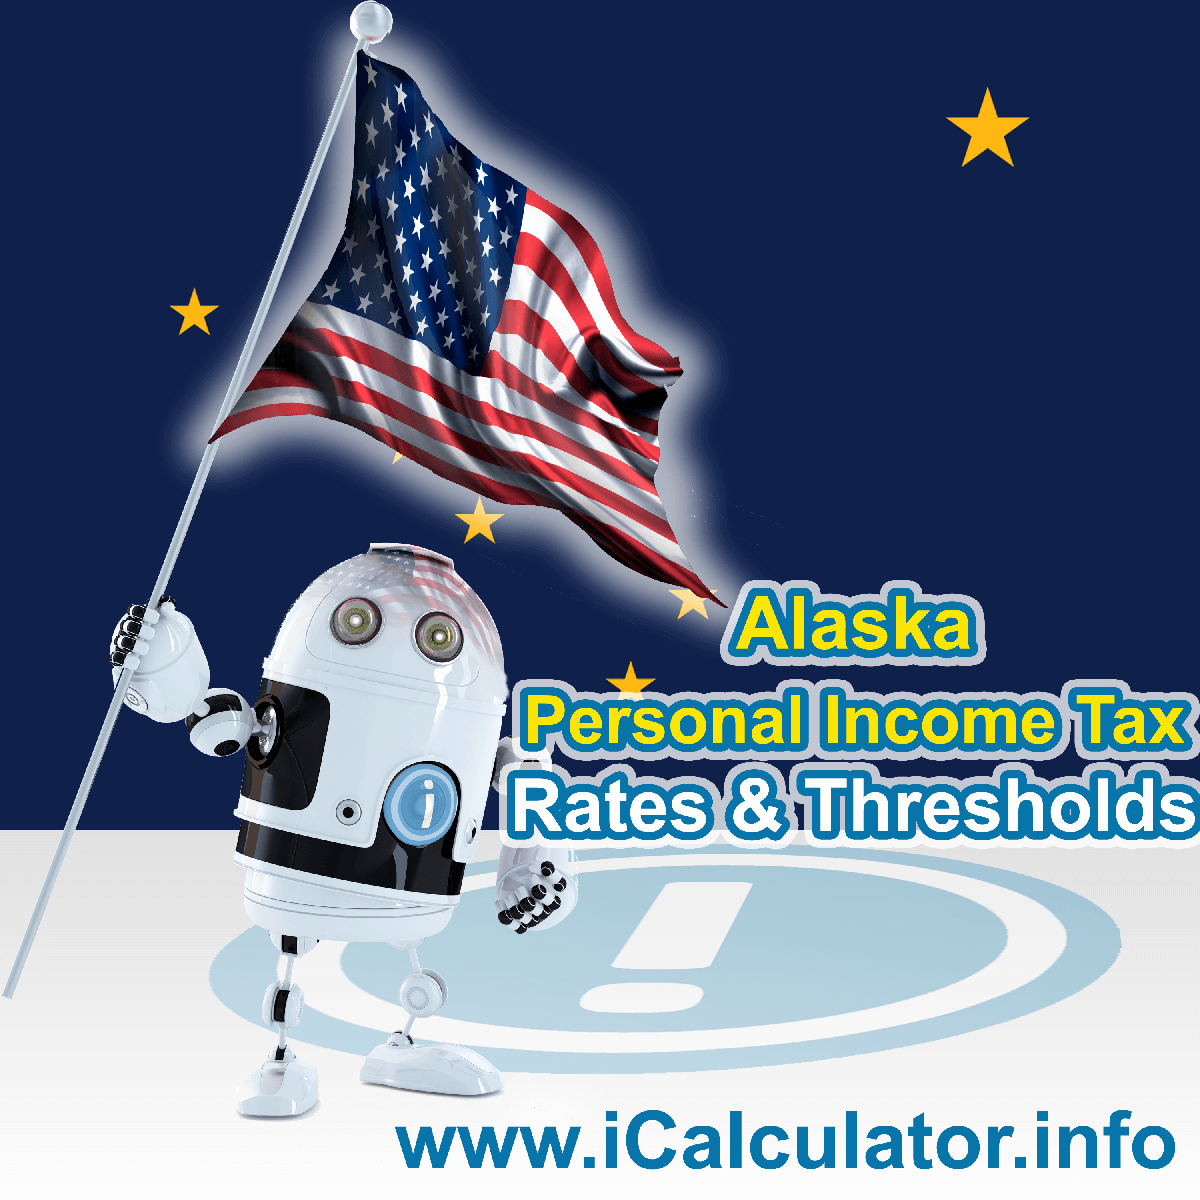 Alaska State Tax Tables 2019. This image displays details of the Alaska State Tax Tables for the 2019 tax return year which is provided in support of the 2019 US Tax Calculator